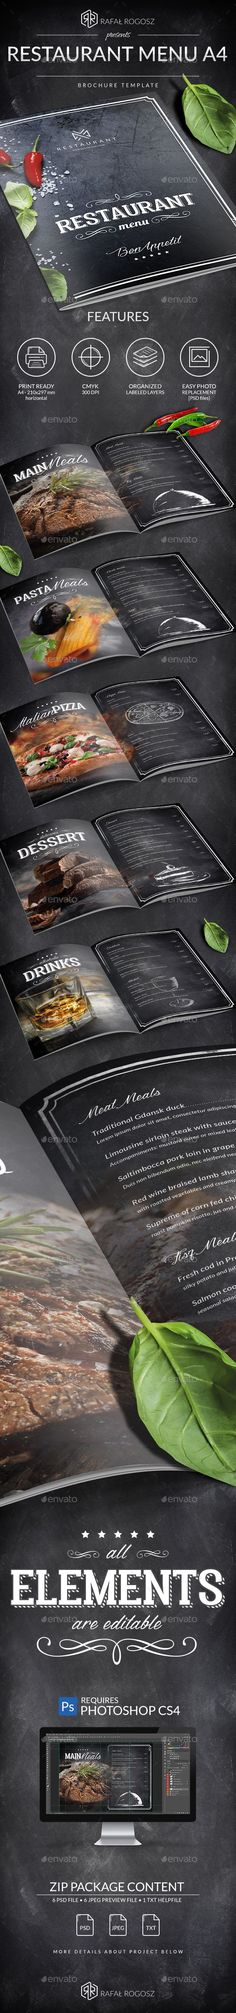 Blackboard Luxury Restaurant Menu A4